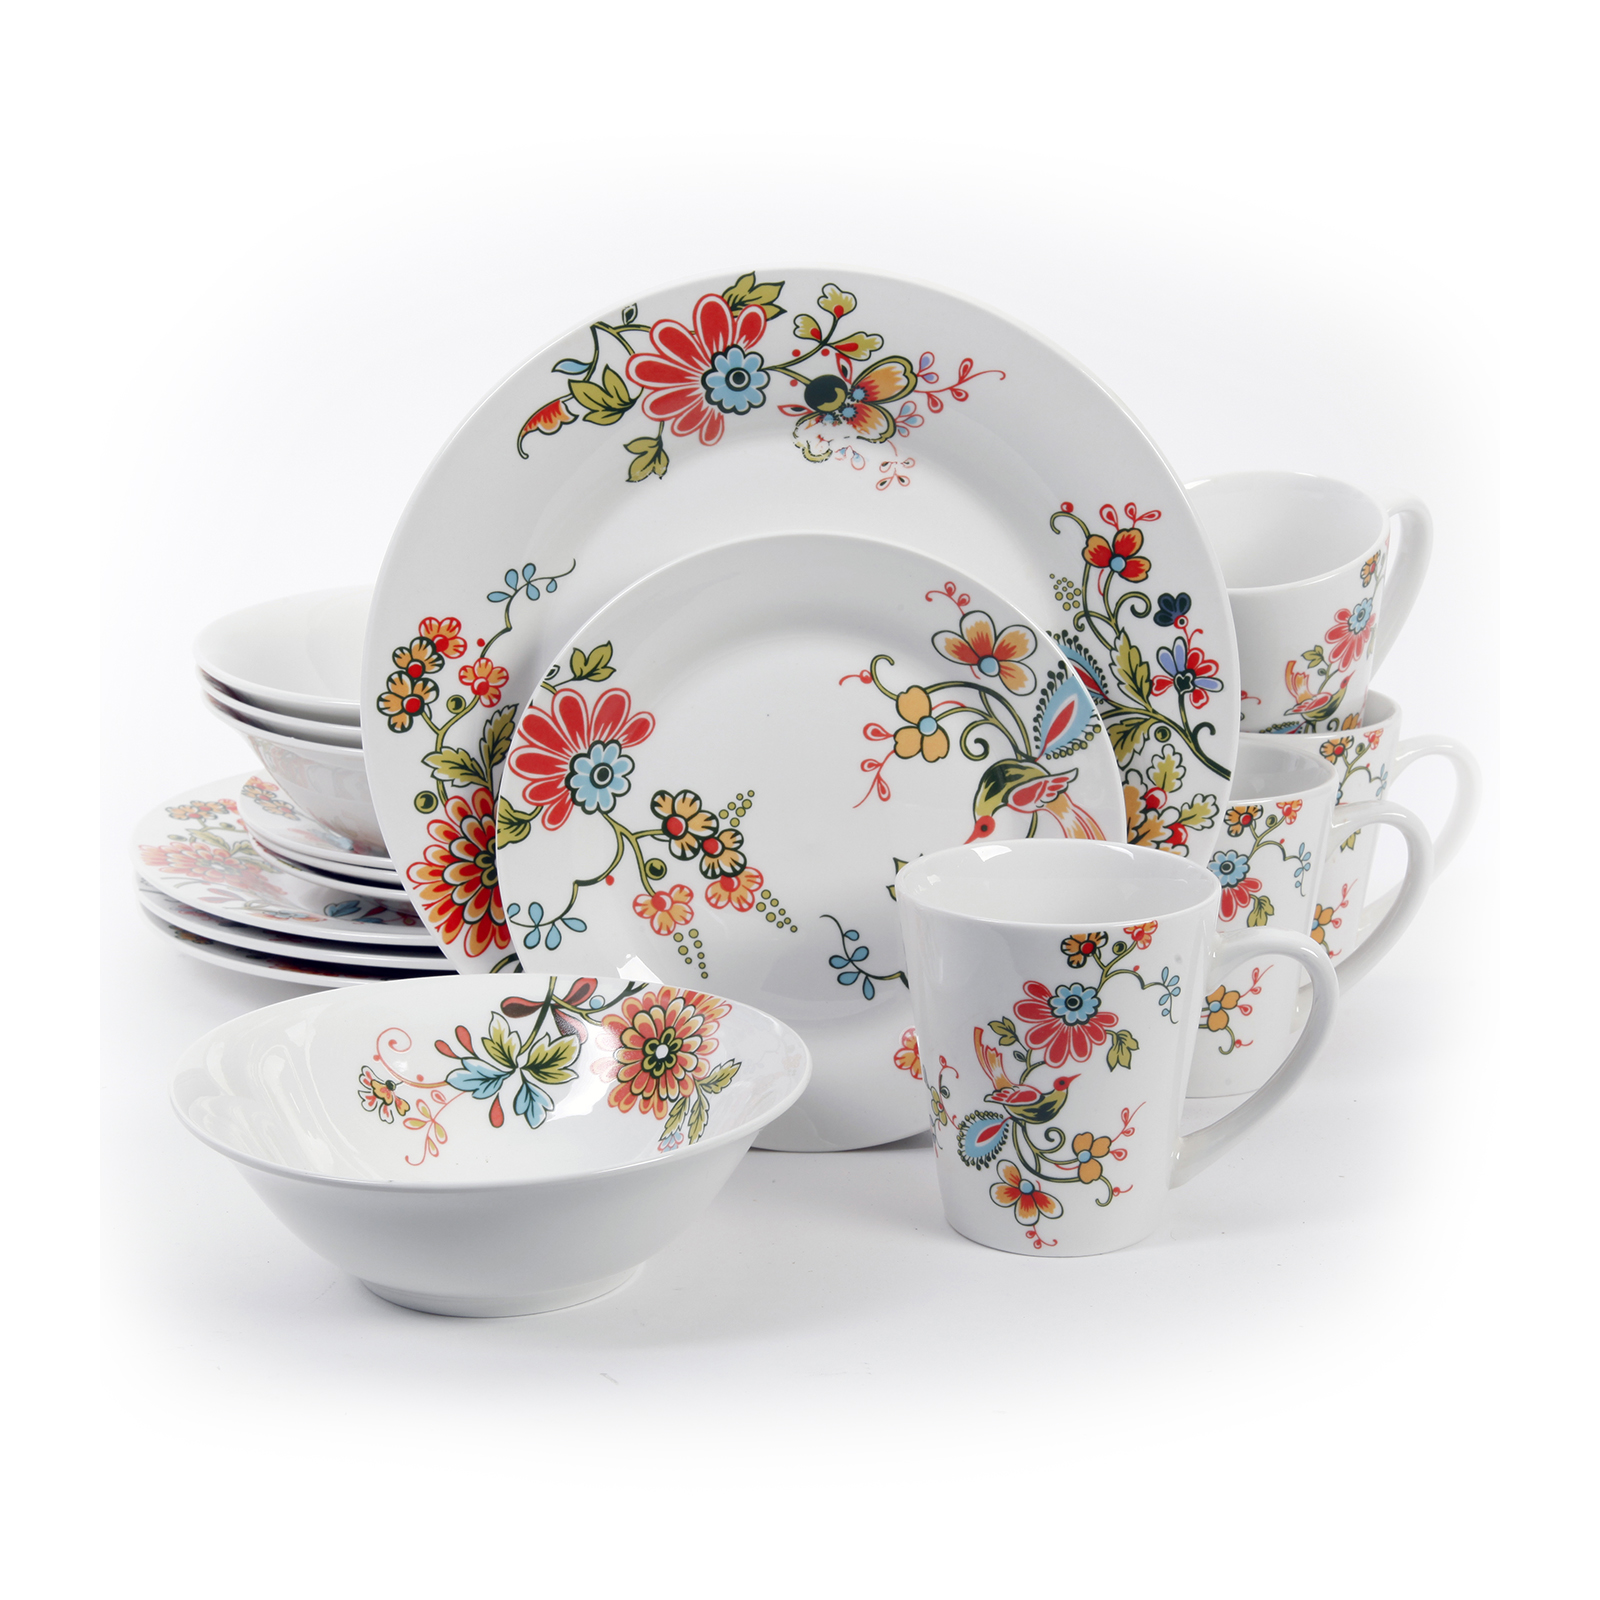 Gibson Doraville 16 Piece Dinnerware Set Multi  sc 1 st  Pinterest & Gibson Doraville 16 Piece Dinnerware Set Multi | Products ...